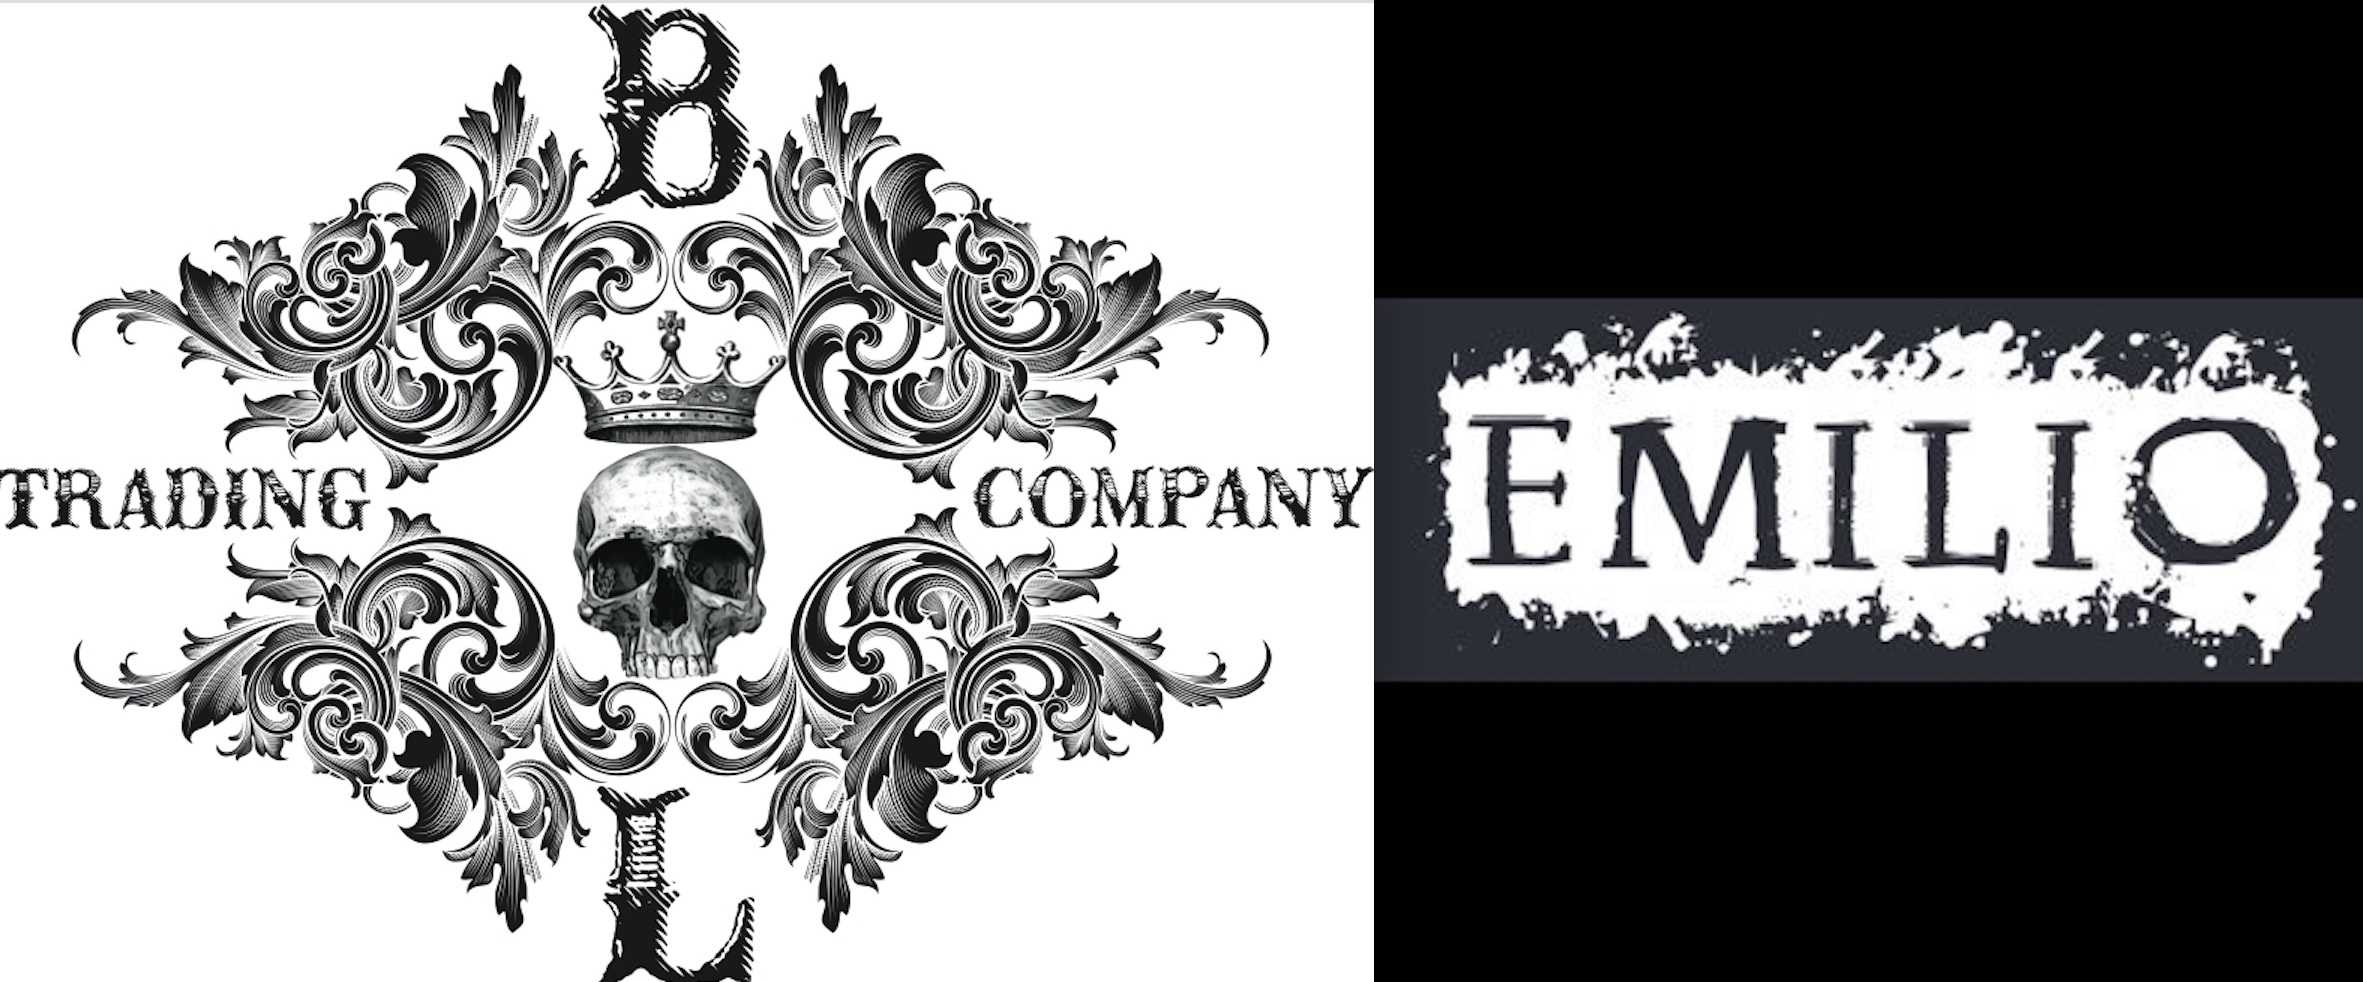 Cigar News: Black Label Trading Company and Emilio Cigars Merge